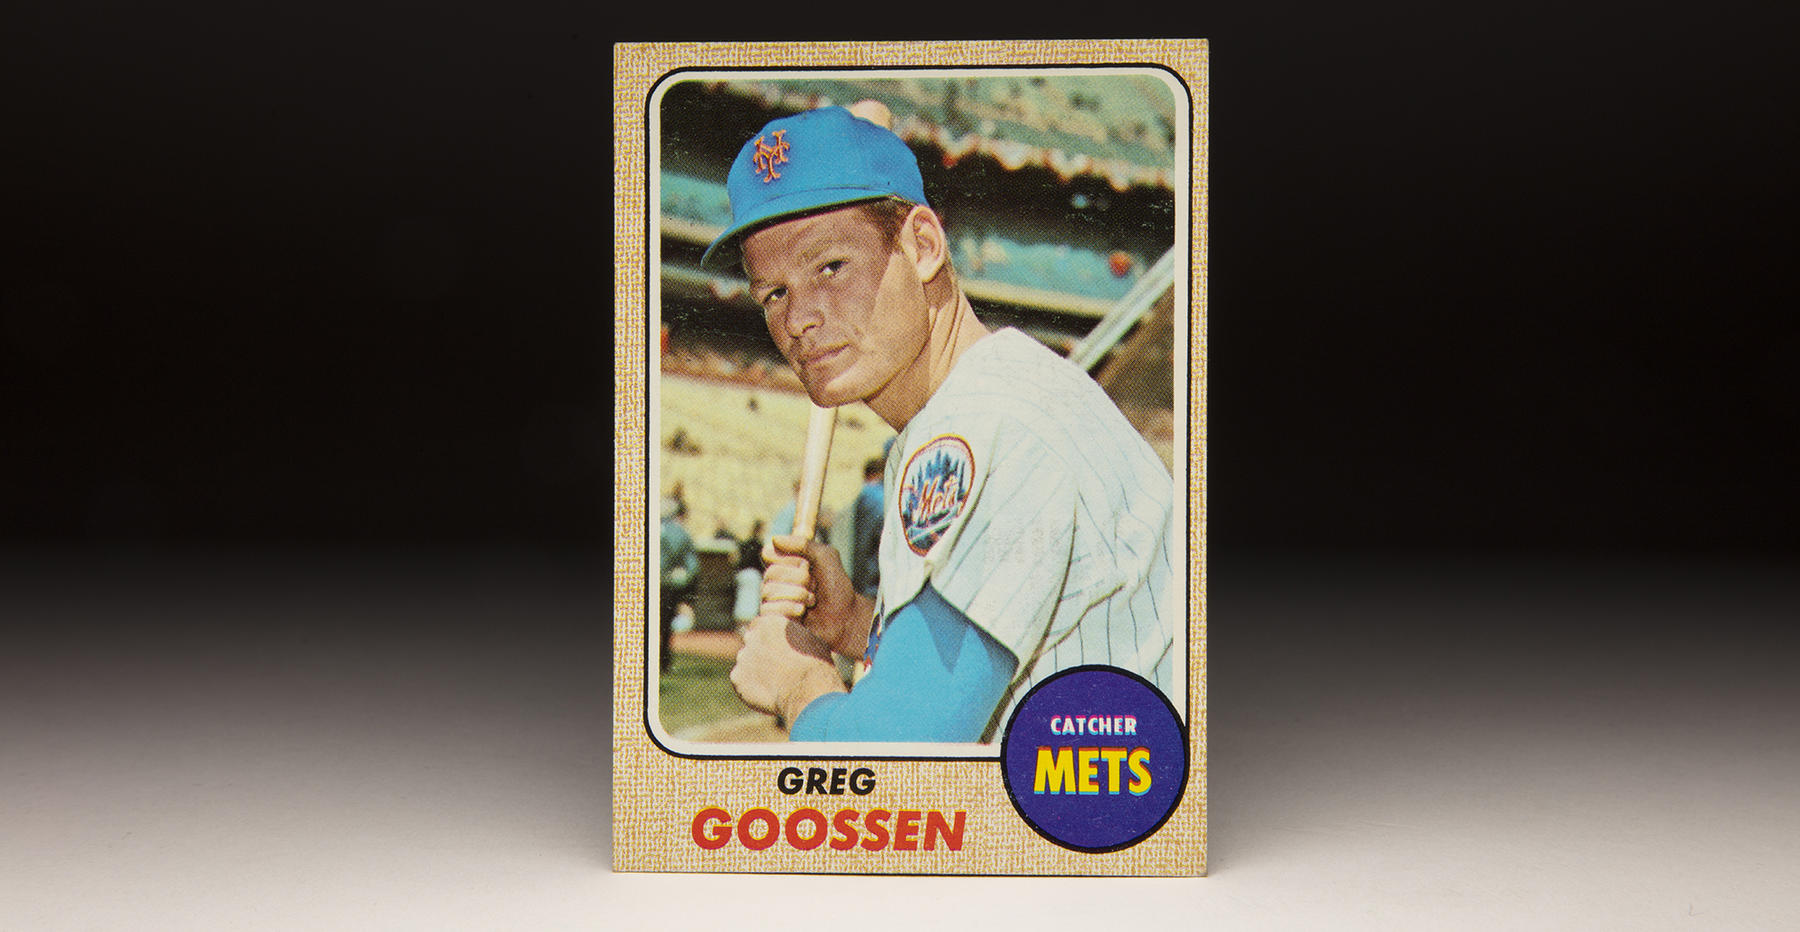 Greg Goossen's 1968 Topps card shows him as a member of the Mets, for whom he played four of his six big league seasons. (Milo Stewart Jr./National Baseball Hall of Fame and Museum)